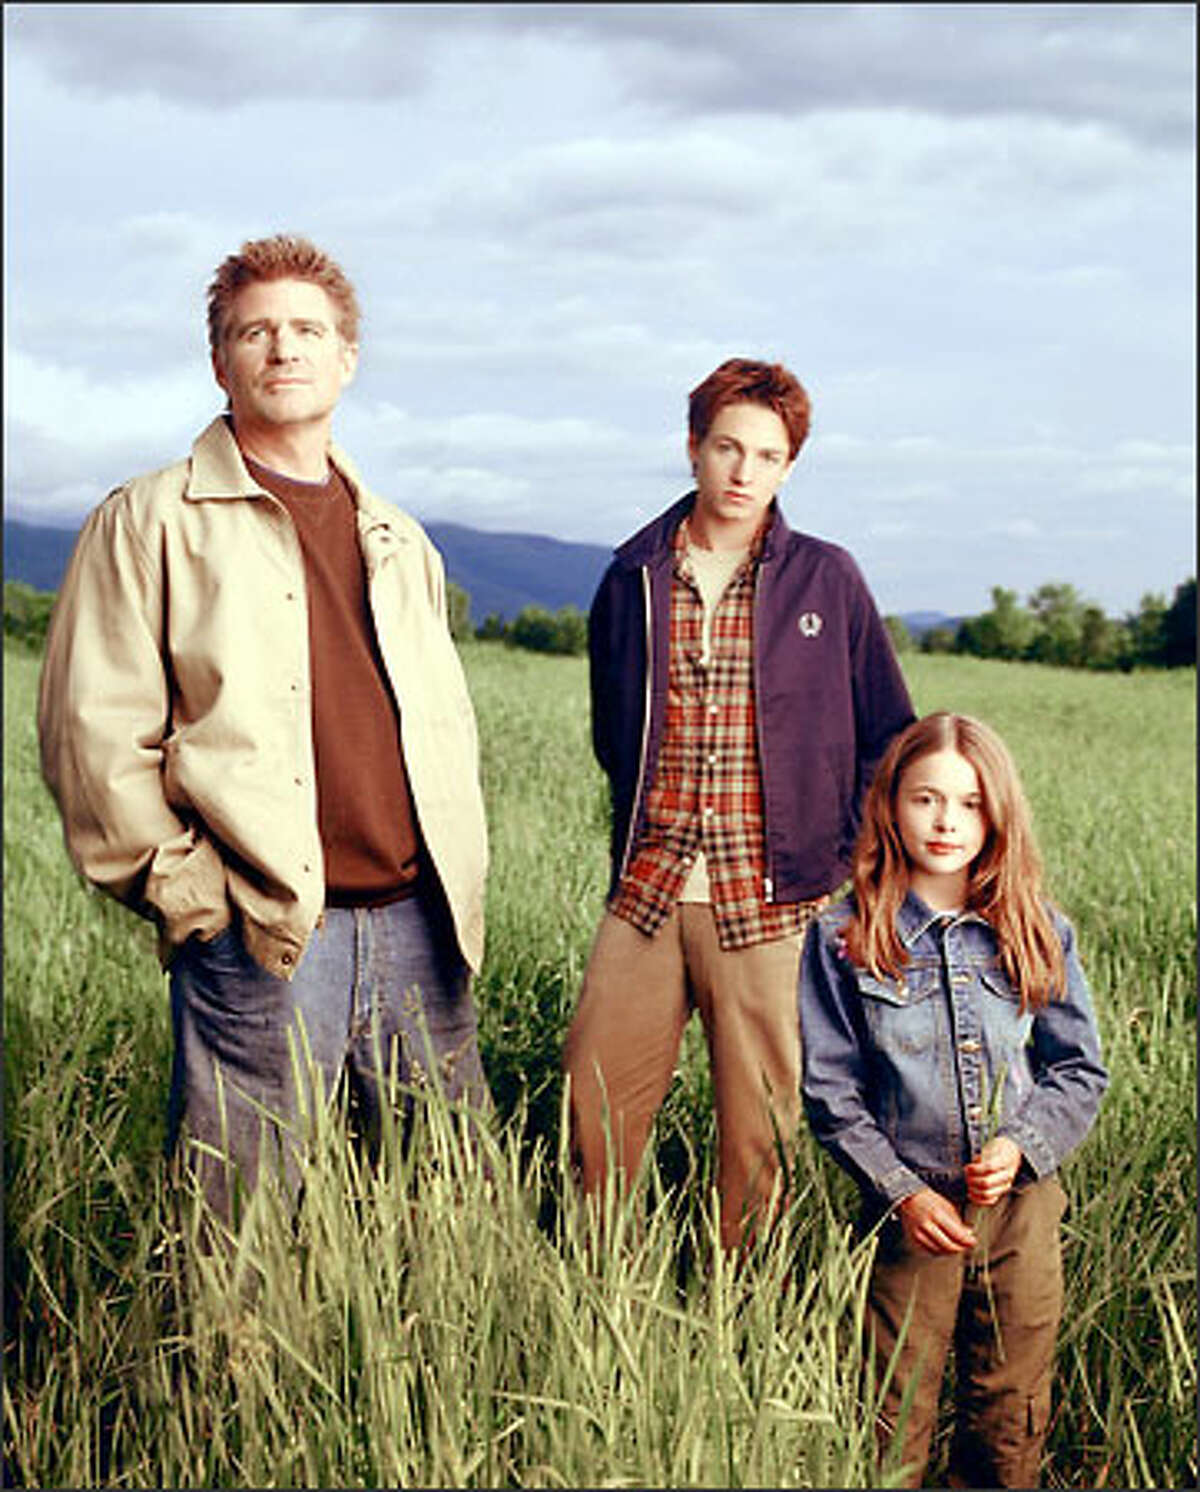 Dr. Andrew Brown (Treat Williams, left) starts a new life with his kids Ephram (Gregory Smith) and Delia (Vivien Cardone).